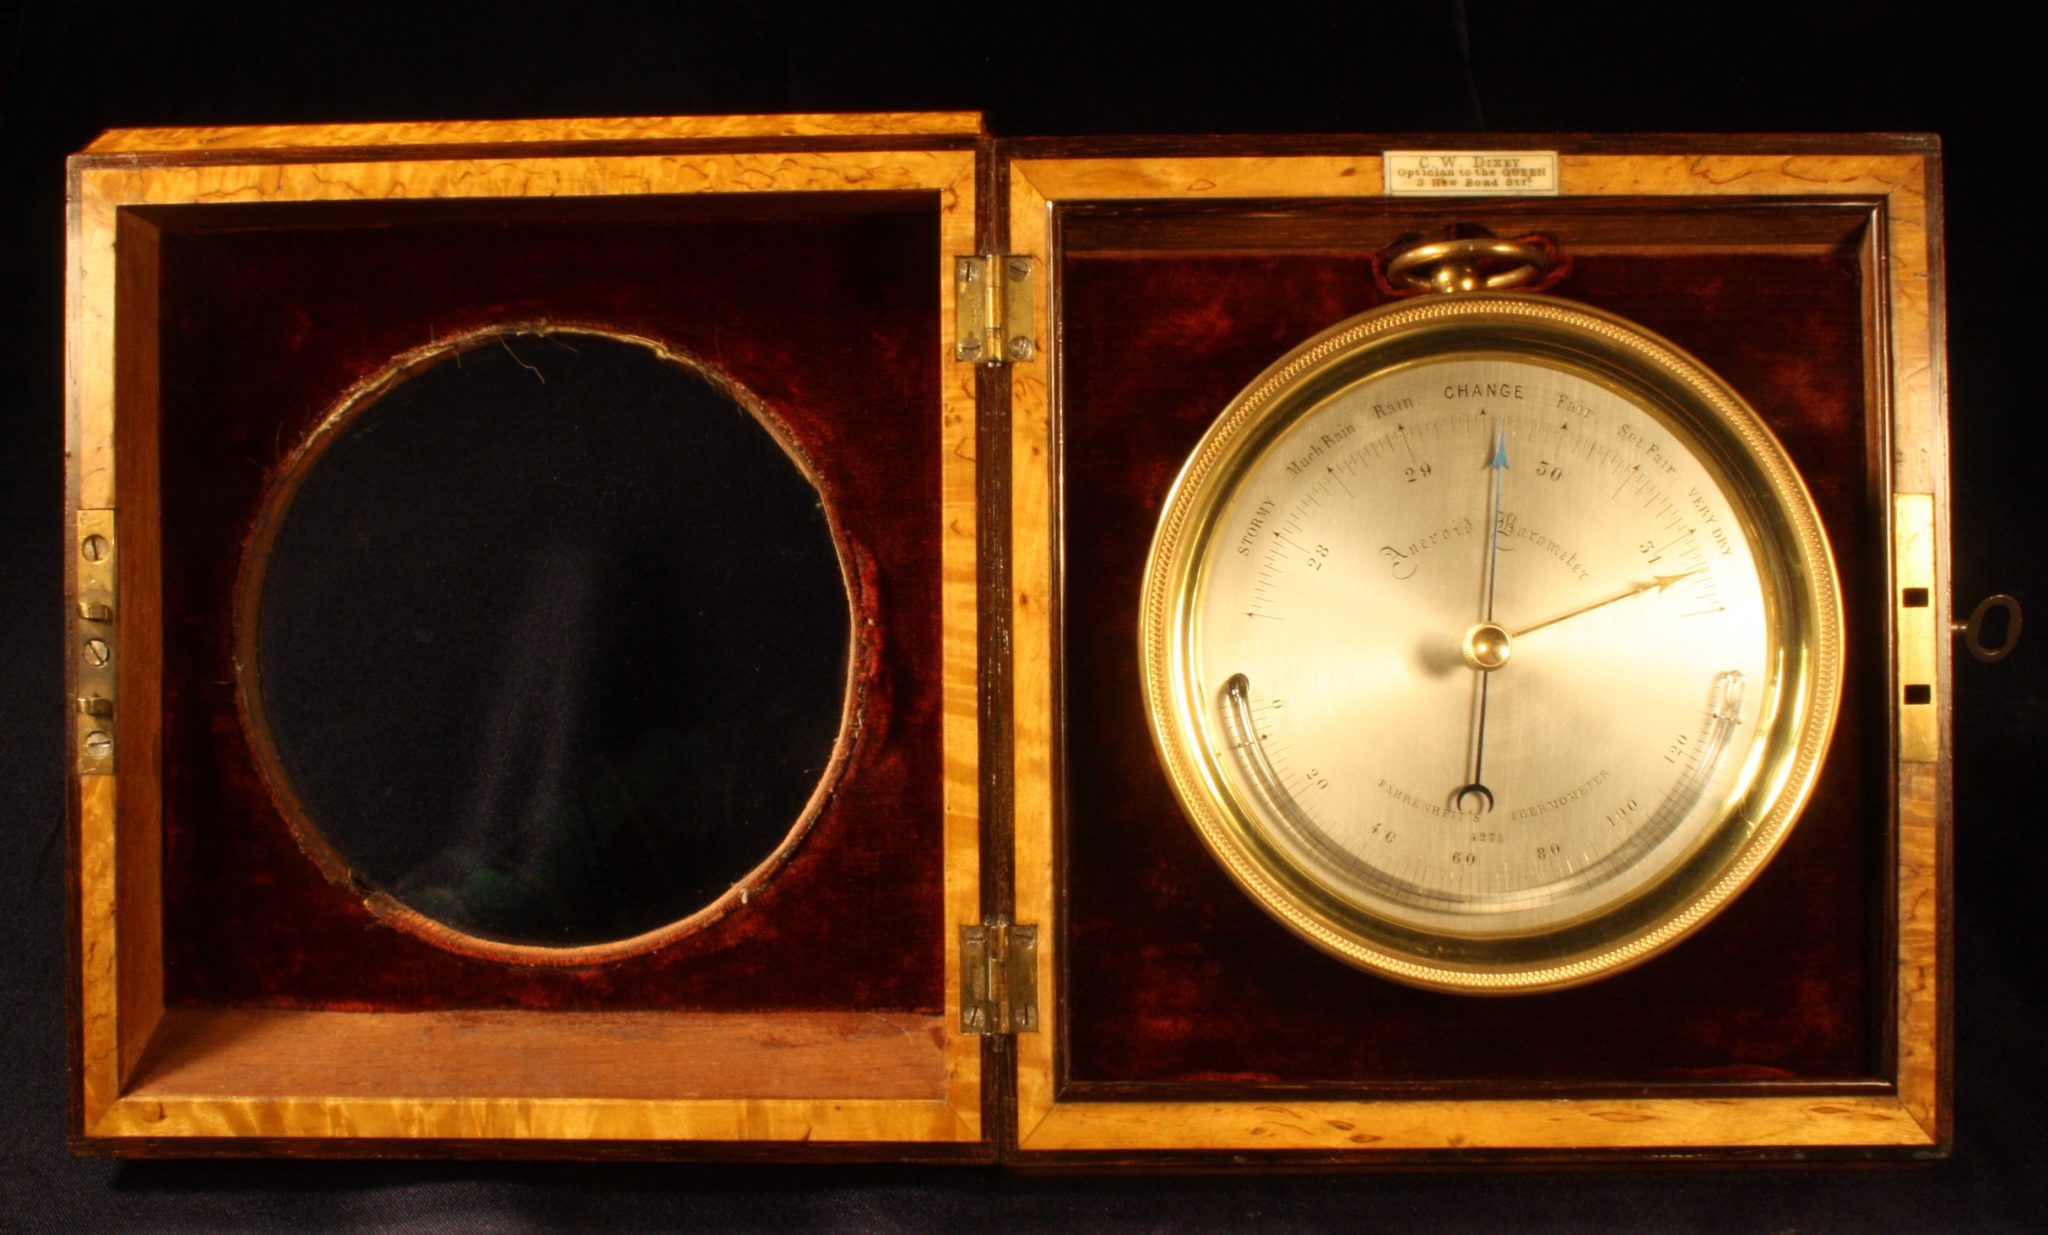 Image of Vidi Desk Barometer No 4275